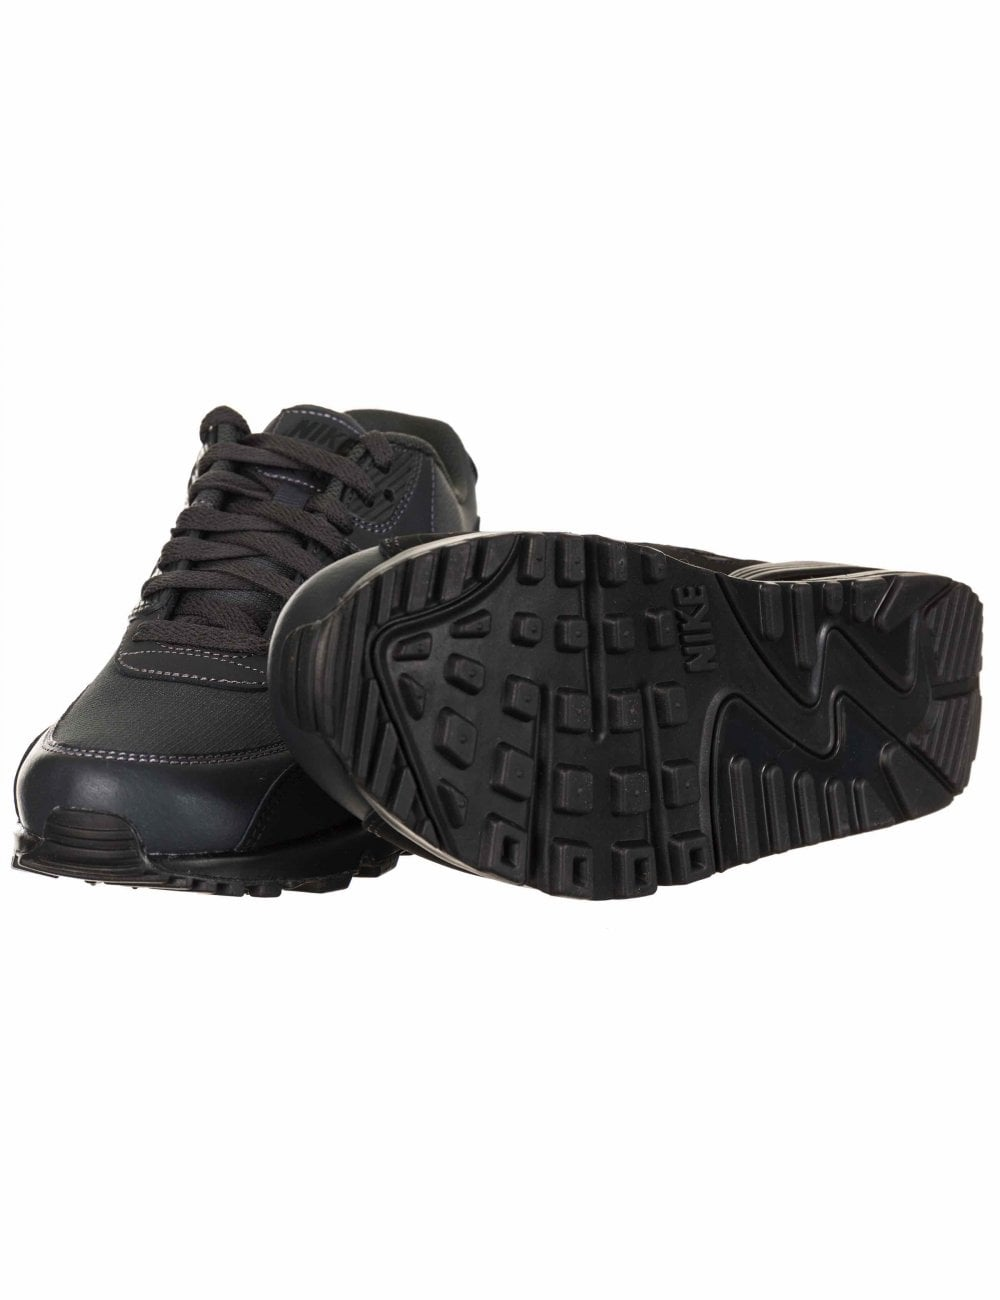 cheap for discount 418df b2b63 Nike Air Max 90 Essential Trainers - Black Anthracite